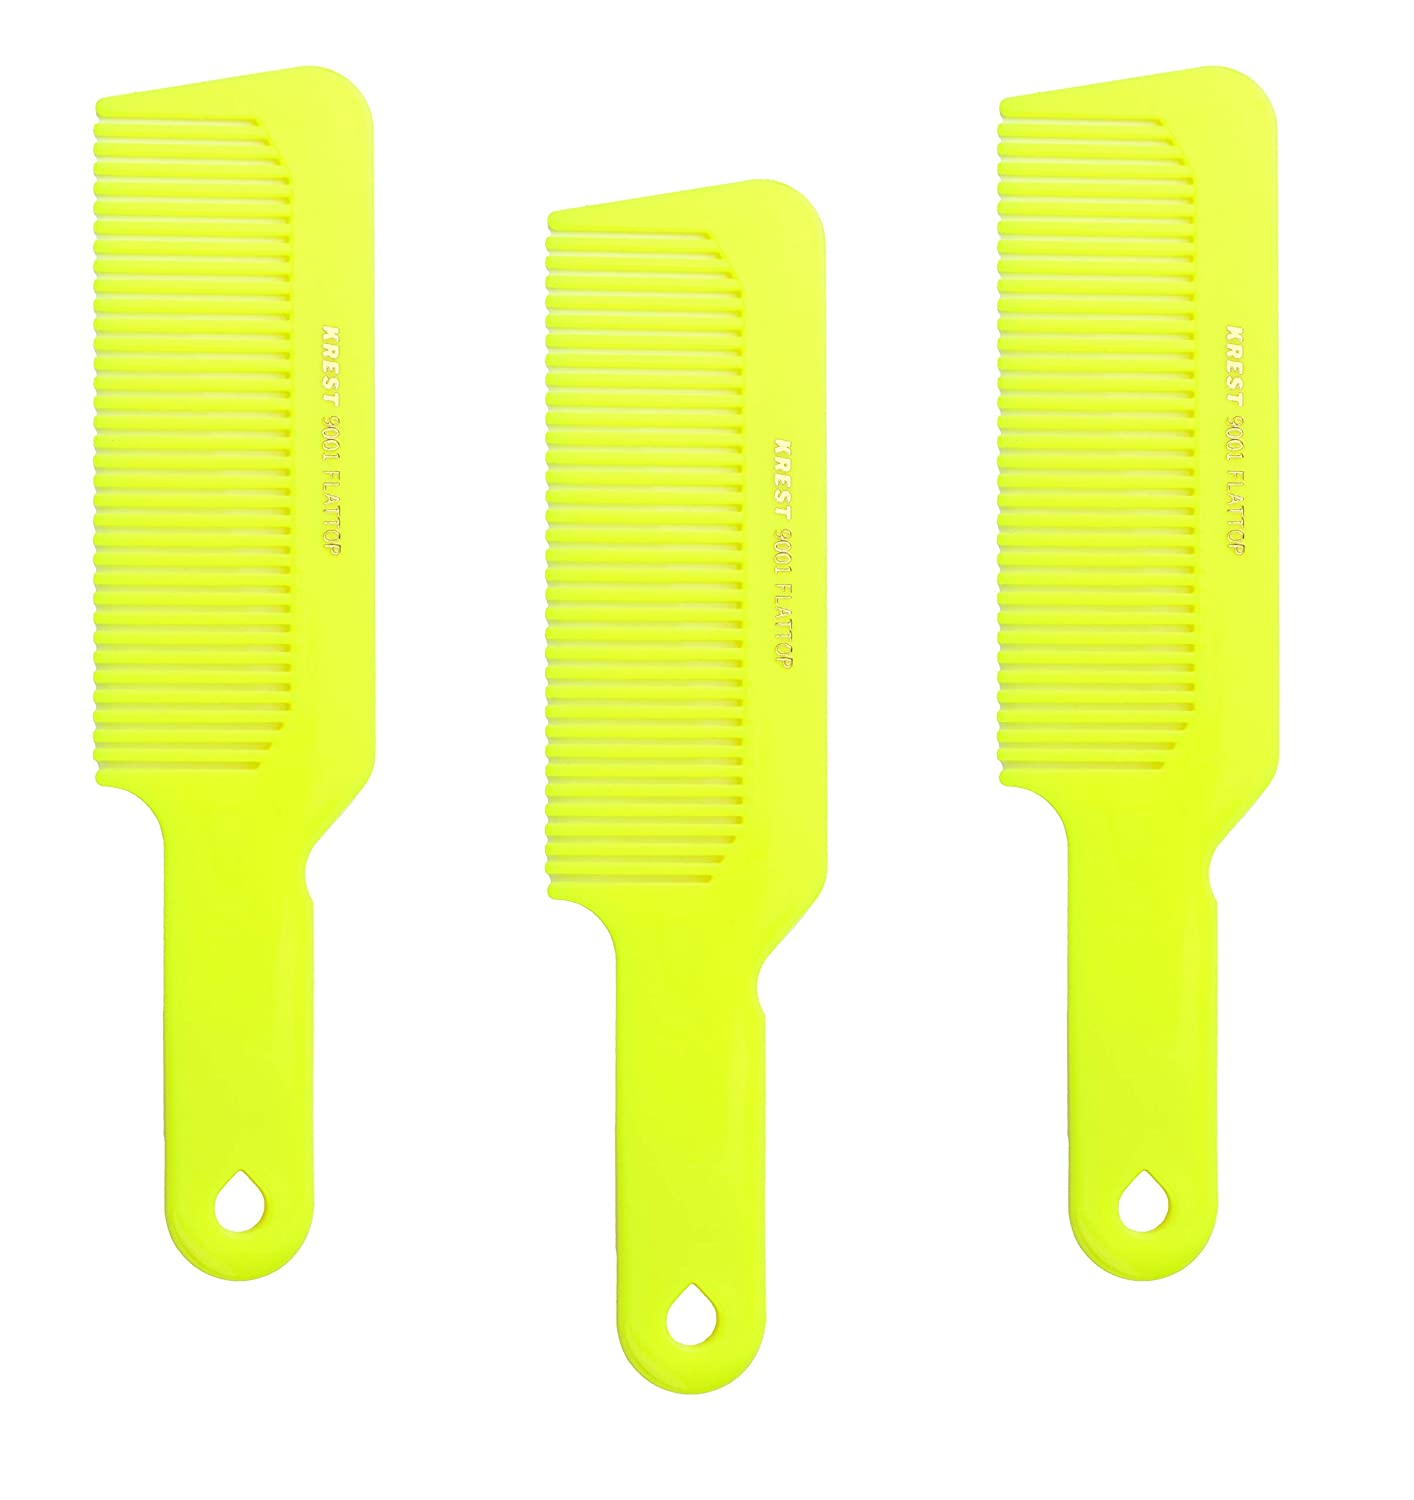 Hair Popular product Comb Fixed price for sale 8-3 4 Flattop C Hairdresser Comb. Cutting Barbers